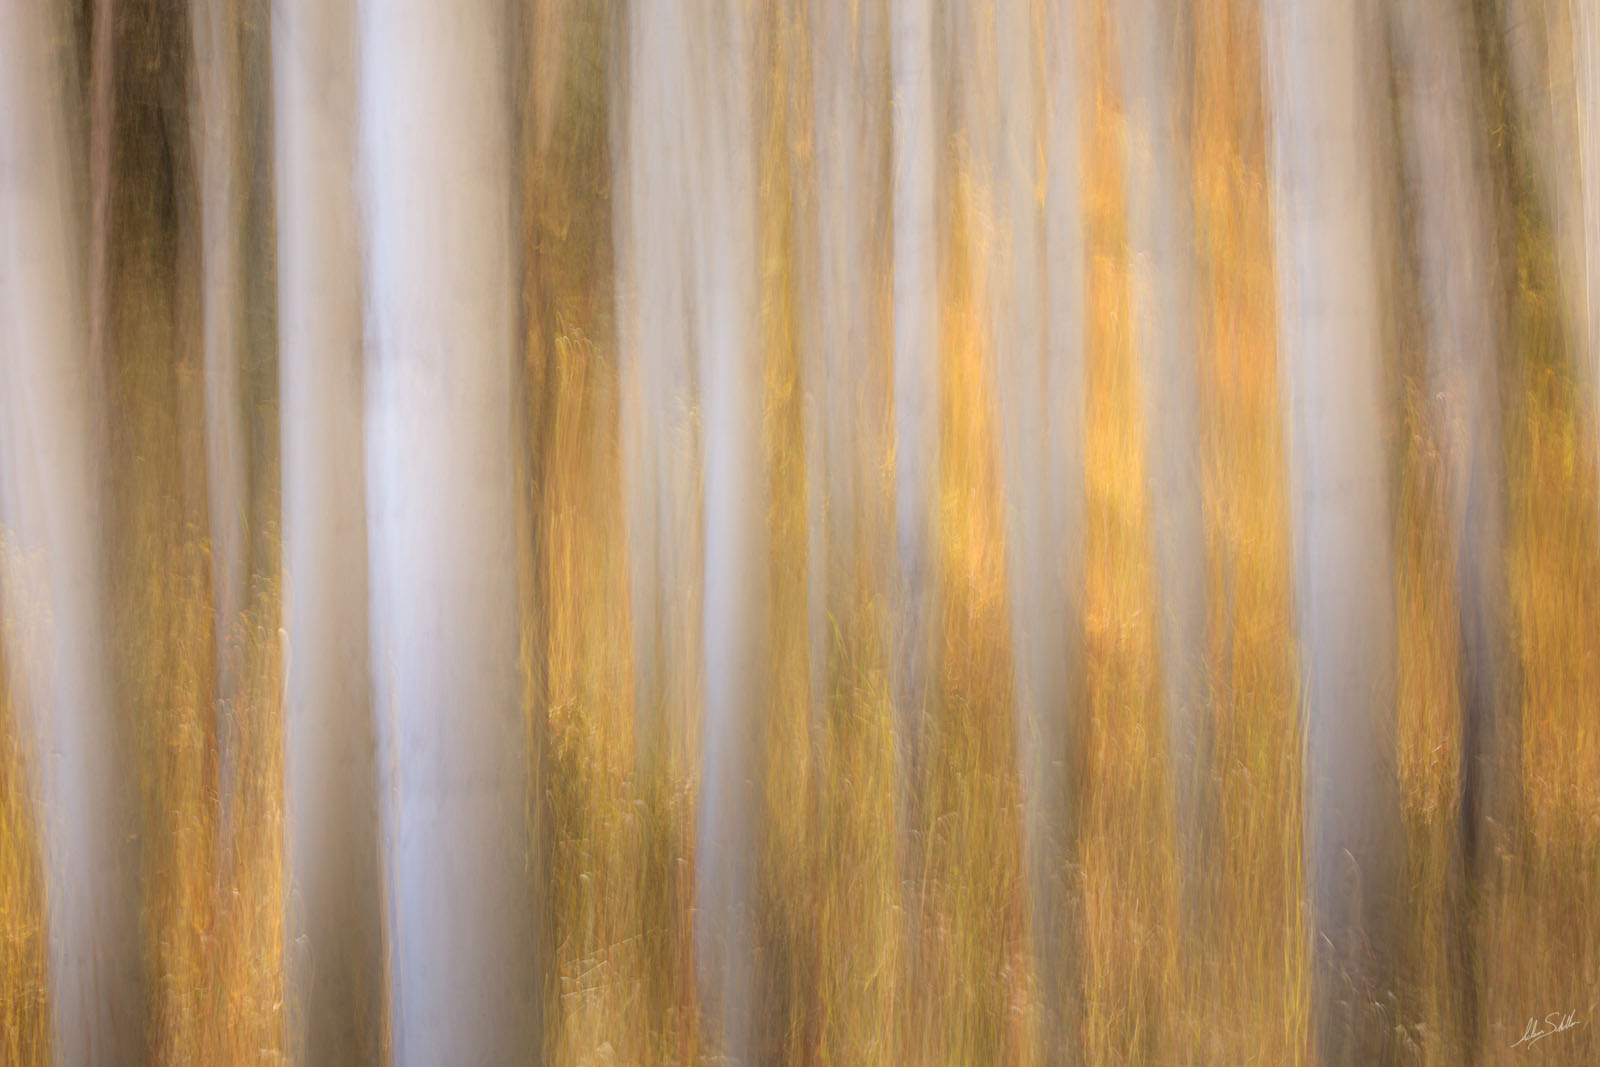 Abstract, Art, Autumn, Blur, CO, Colorado, Fall, Fall Color, ICM, Impressionistic, In Camera Motion, photo